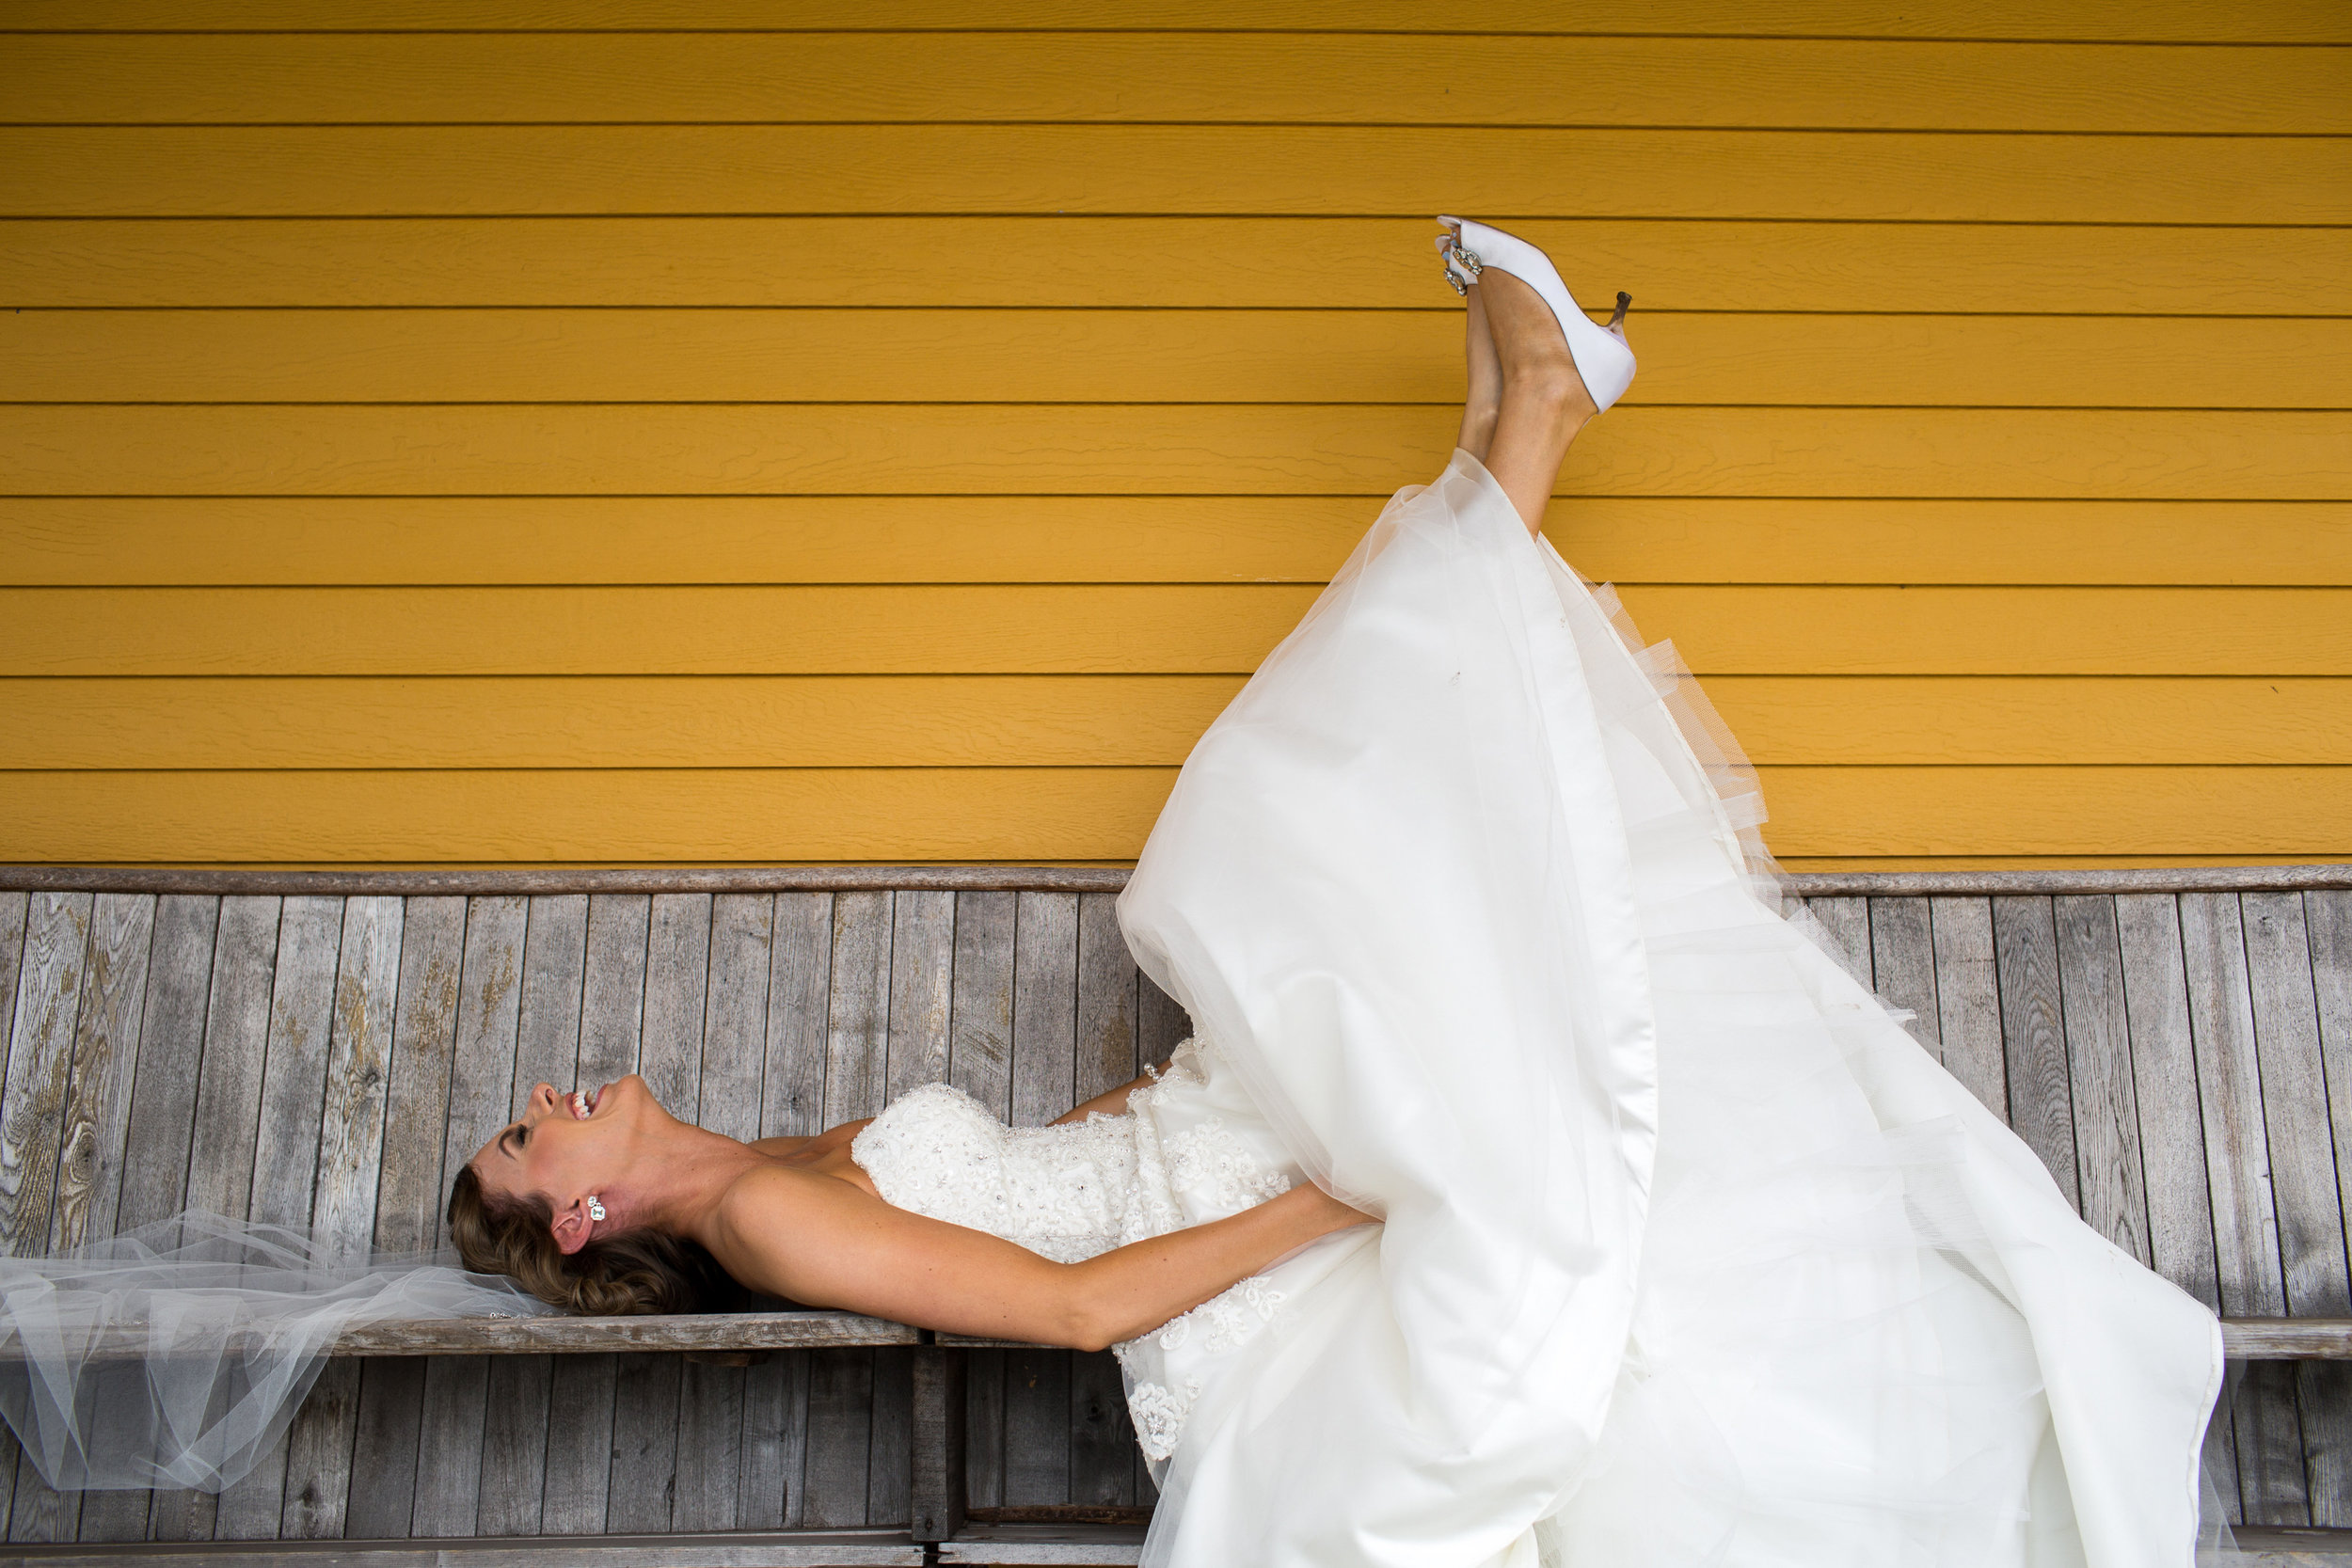 moncton_wedding_photographer_caro_photo-2.jpg